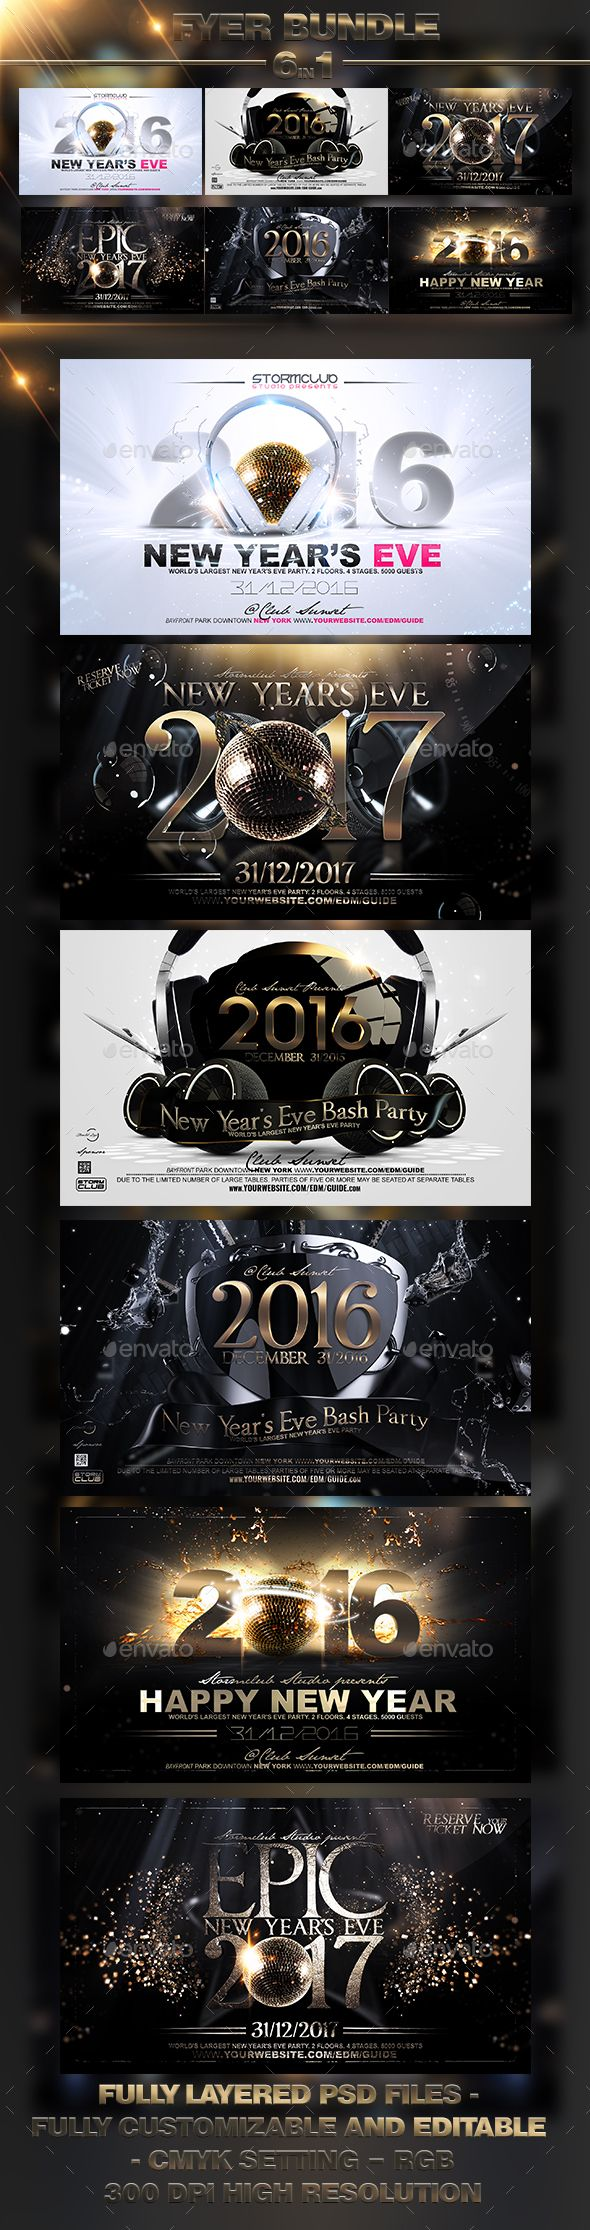 NYE Flyer Templates PSD Bundle #design #nye Download…